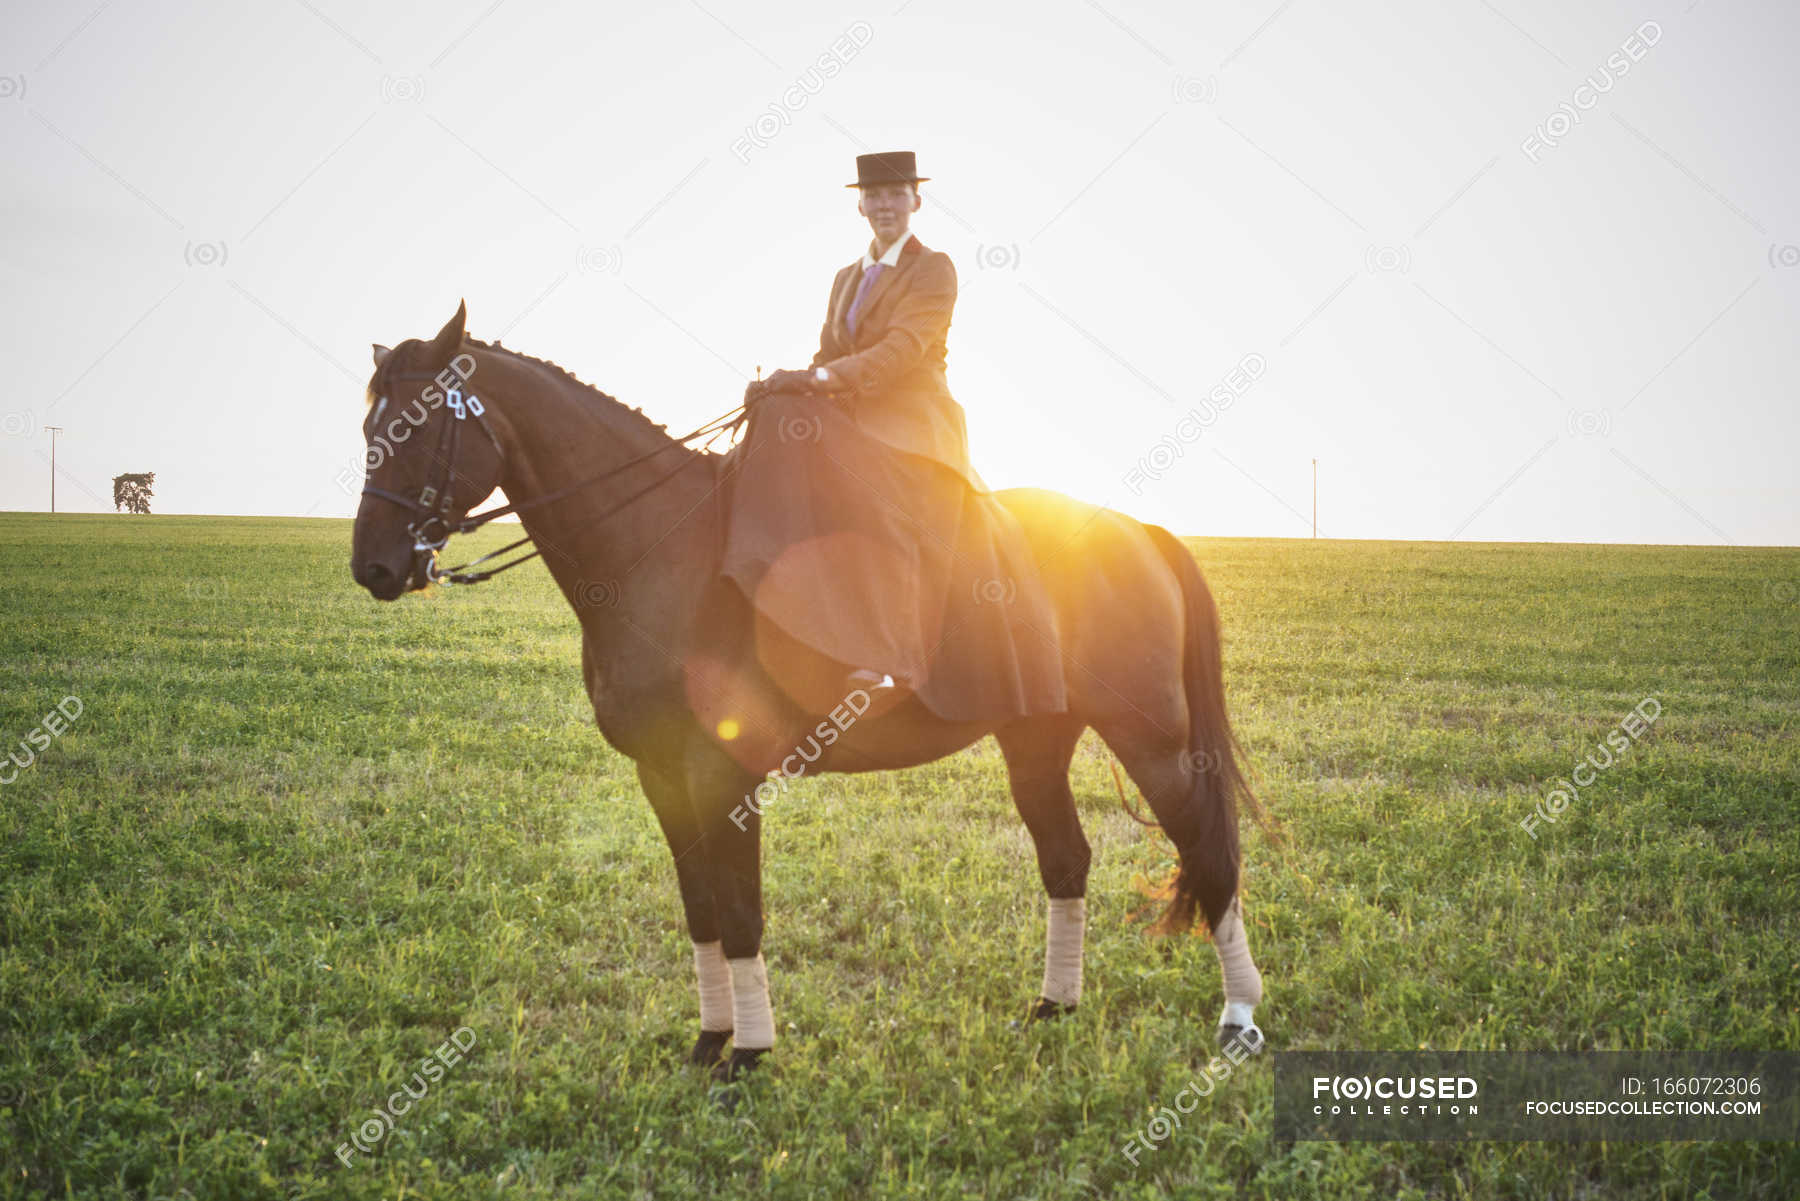 Portrait Of Dressage Horse And Rider Training In Field At Sunset Side Saddle Evening Stock Photo 166072306